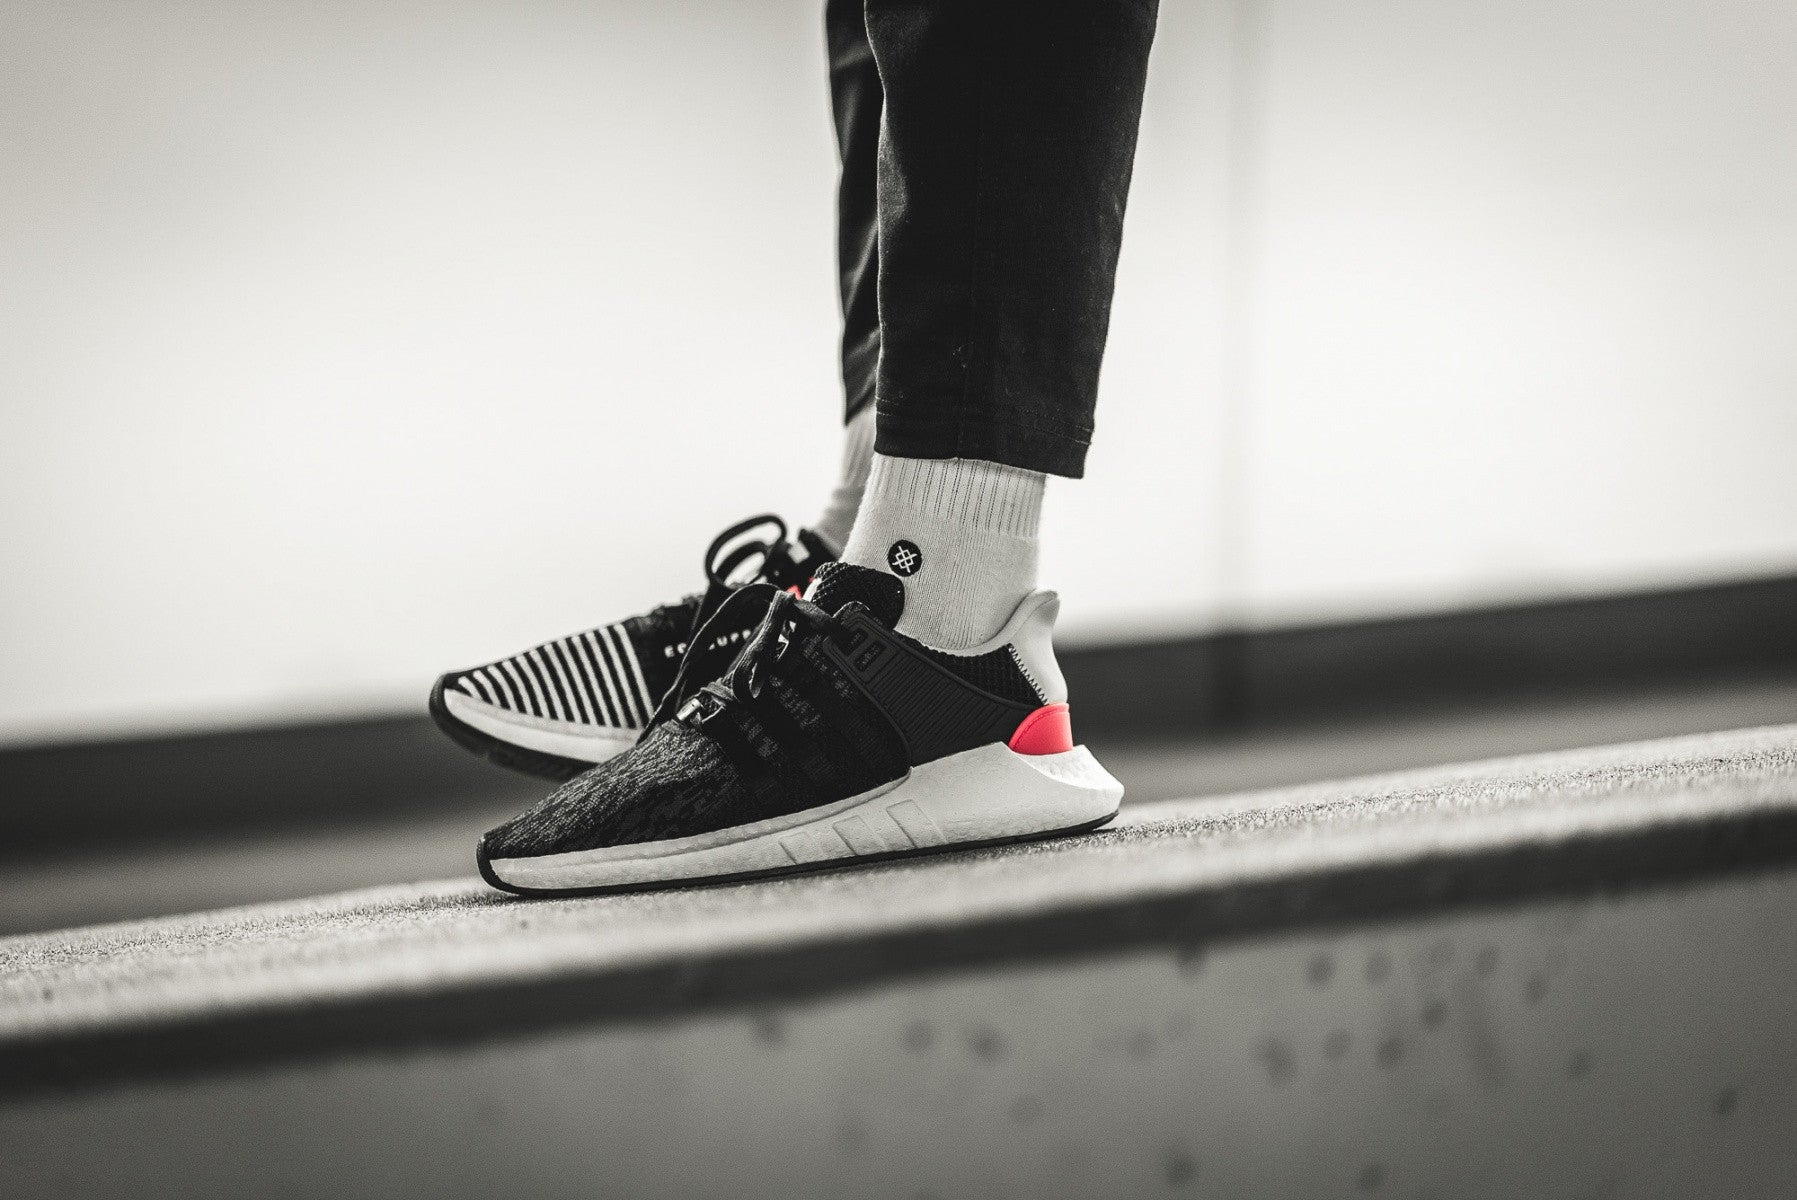 Adidas Equipment 'EQT' Support 93/17 Milled Leather Review and On